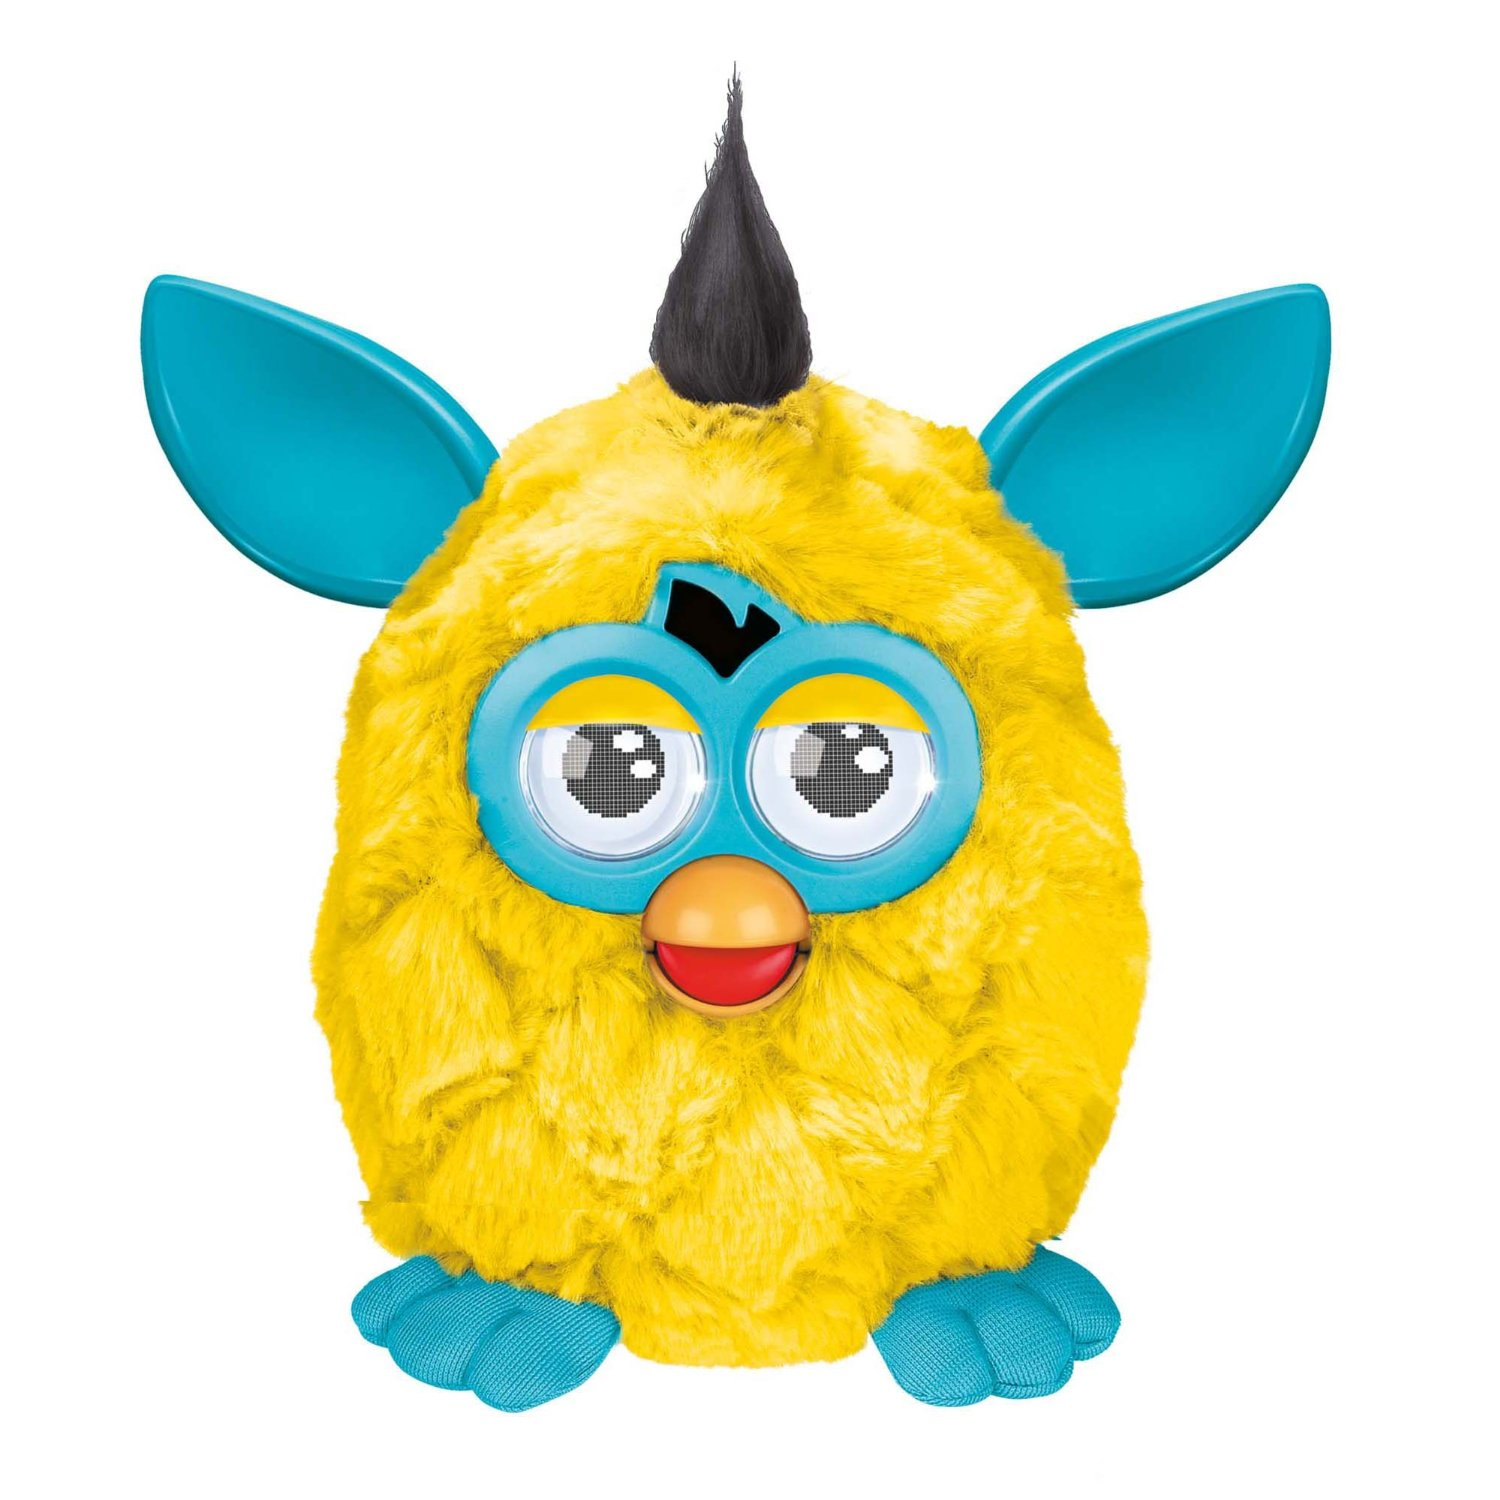 Furby Yellow and Teal